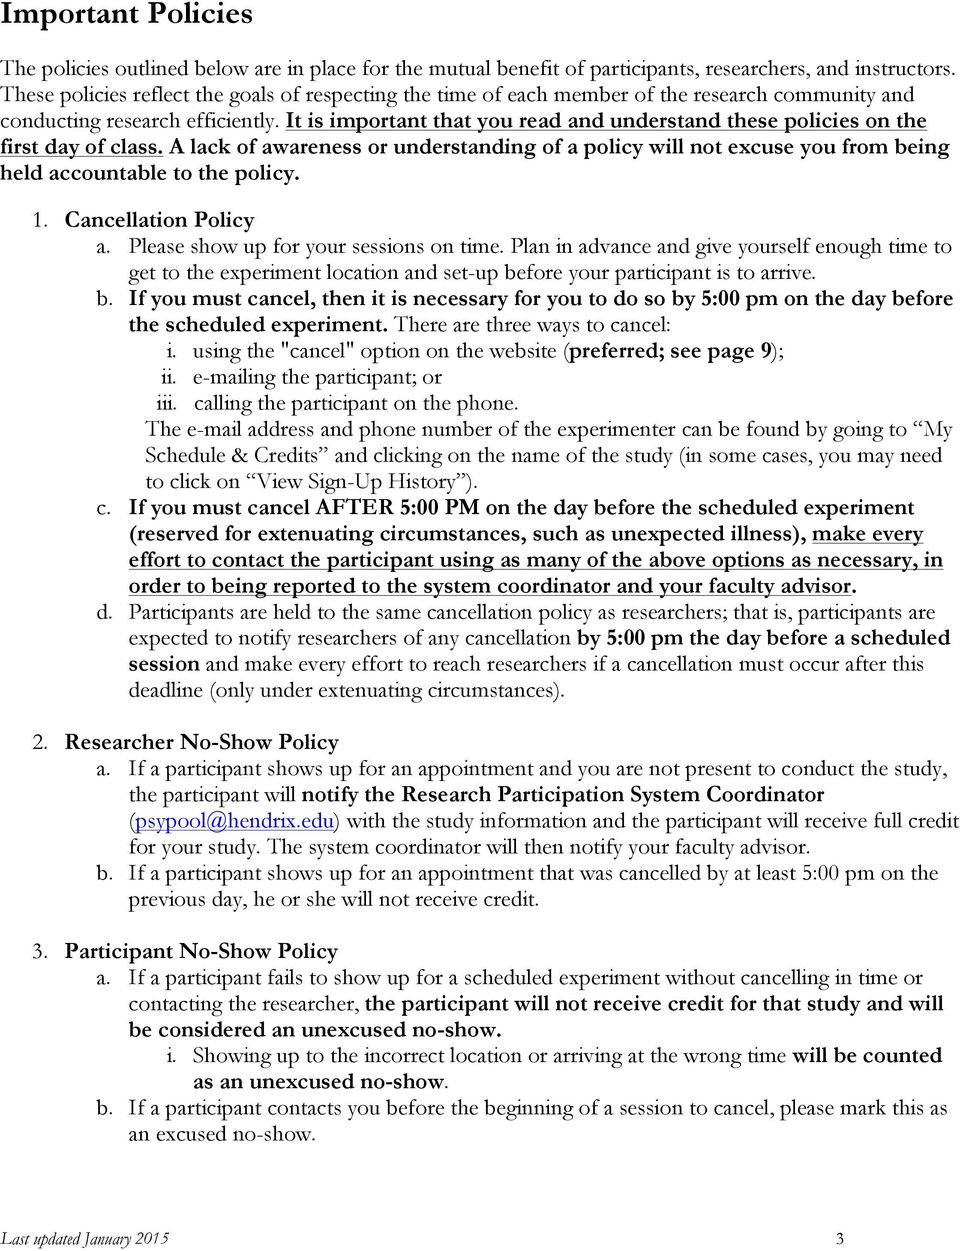 It is important that you read and understand these policies on the first day of class. A lack of awareness or understanding of a policy will not excuse you from being held accountable to the policy.